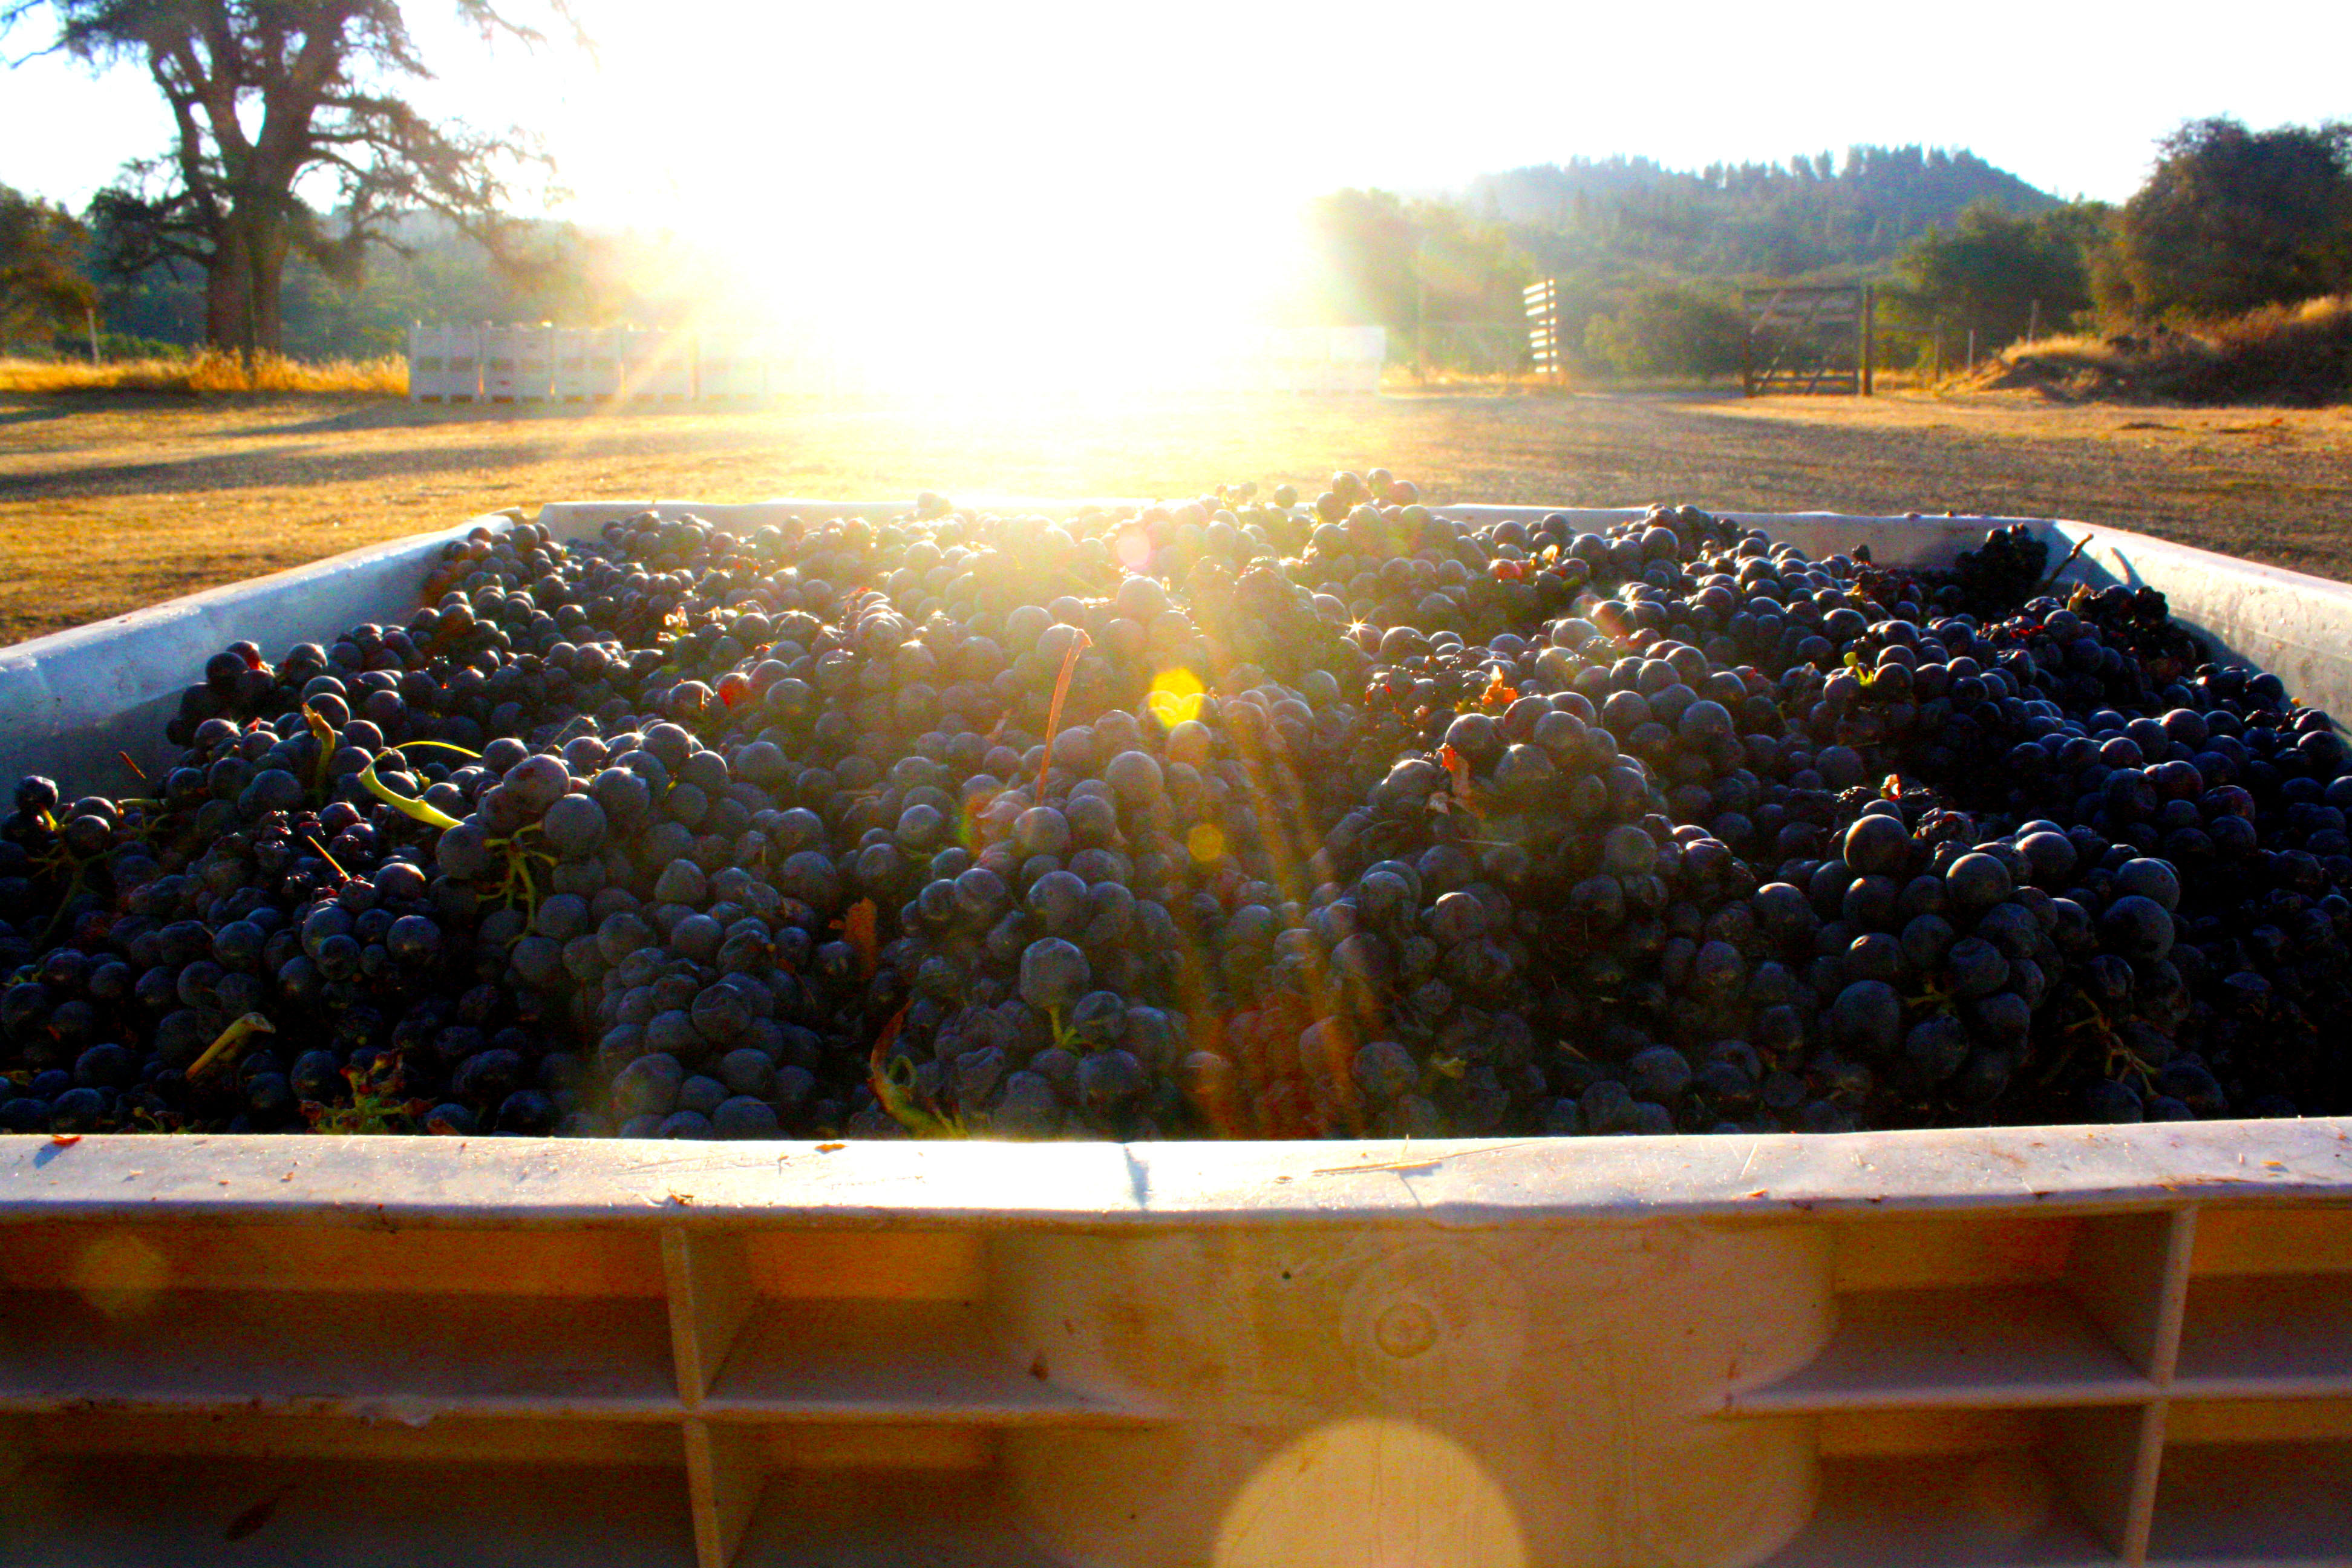 Bin of Grapes at Harvest